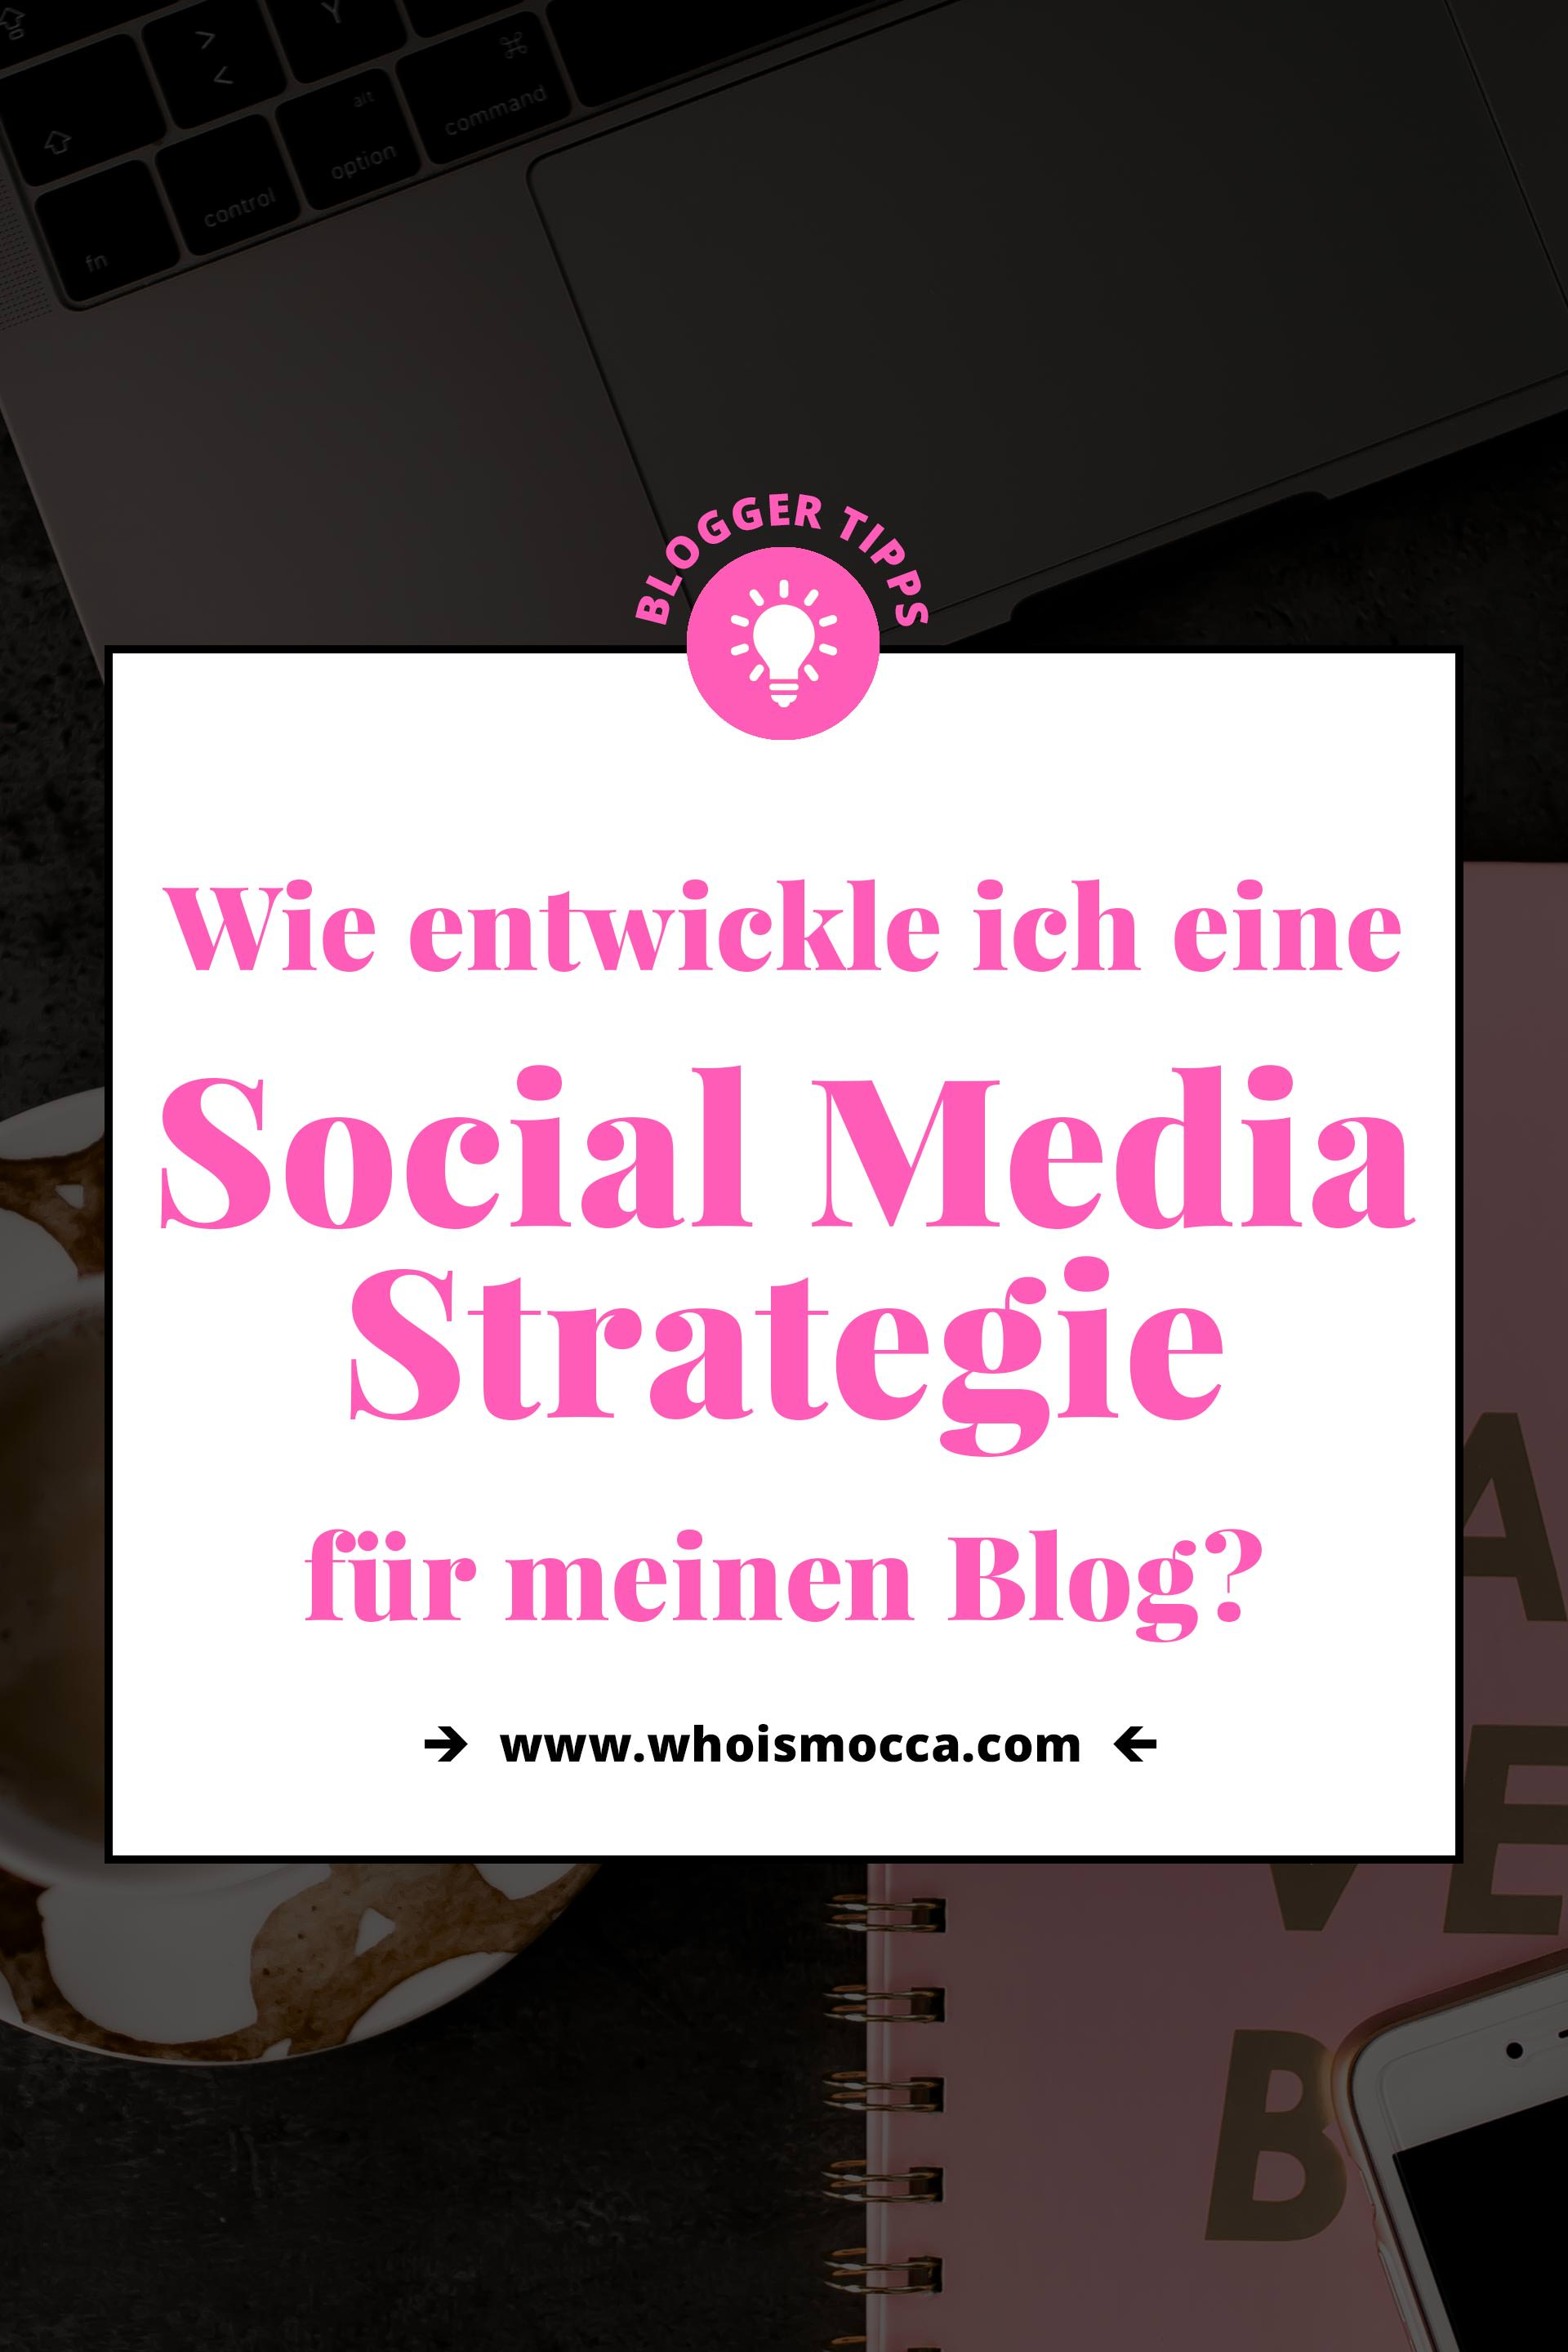 enthält unbeauftragte Werbung, Was ist Social Media Marketing, 10 Tipps und Strategien für Blogger, Blogger Tipps, Blogger Guide, Social Media Strategien, Marketing Trends, wie funktioniert Social Media Marketing, mehr Blogleser bekommen, Blog Reichweite steigern, Facebook und Instagram Marketing Tipps, Karriere Blog, www.whoismocca.com #socialmedia #marketing #blogger #tipps #instagram #facebook